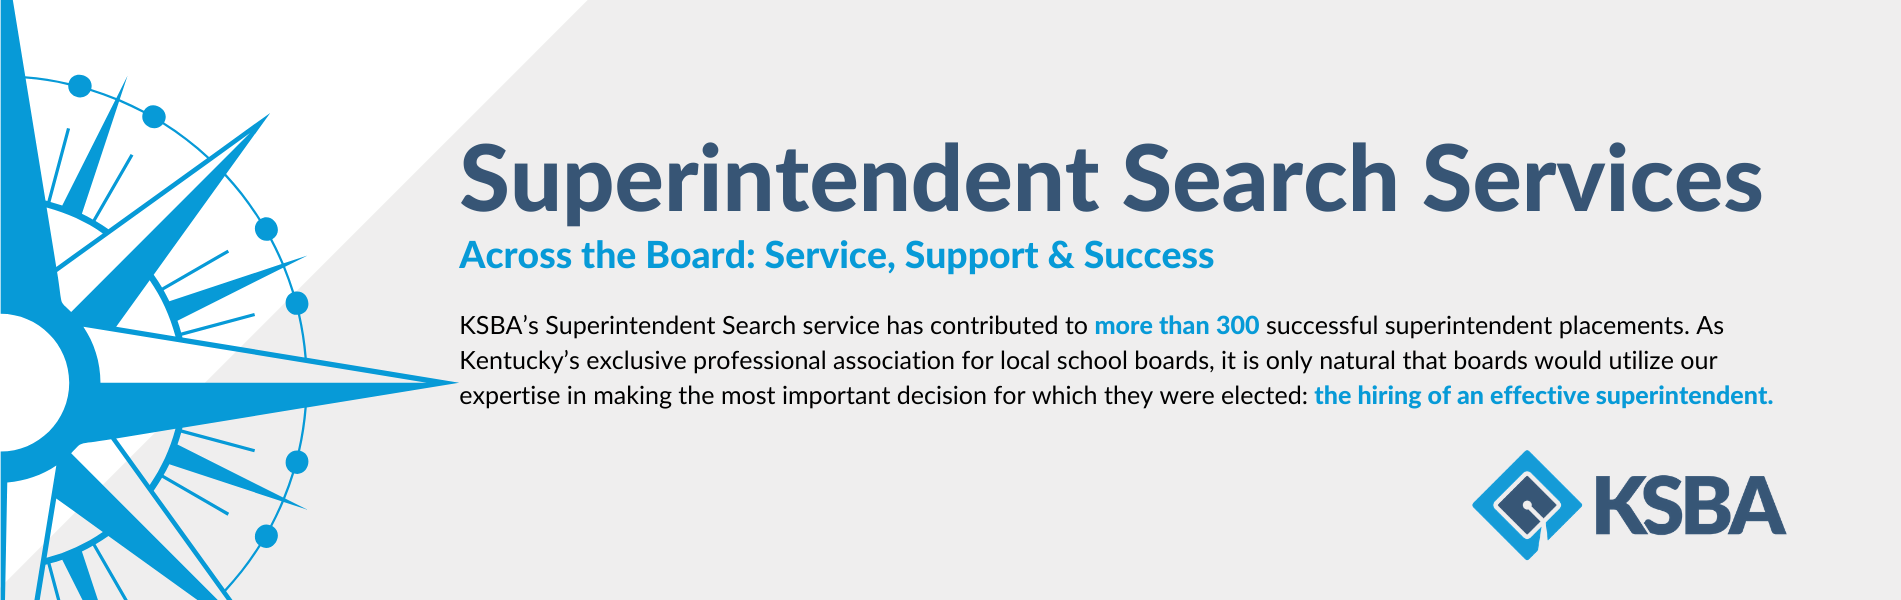 superintendent search service